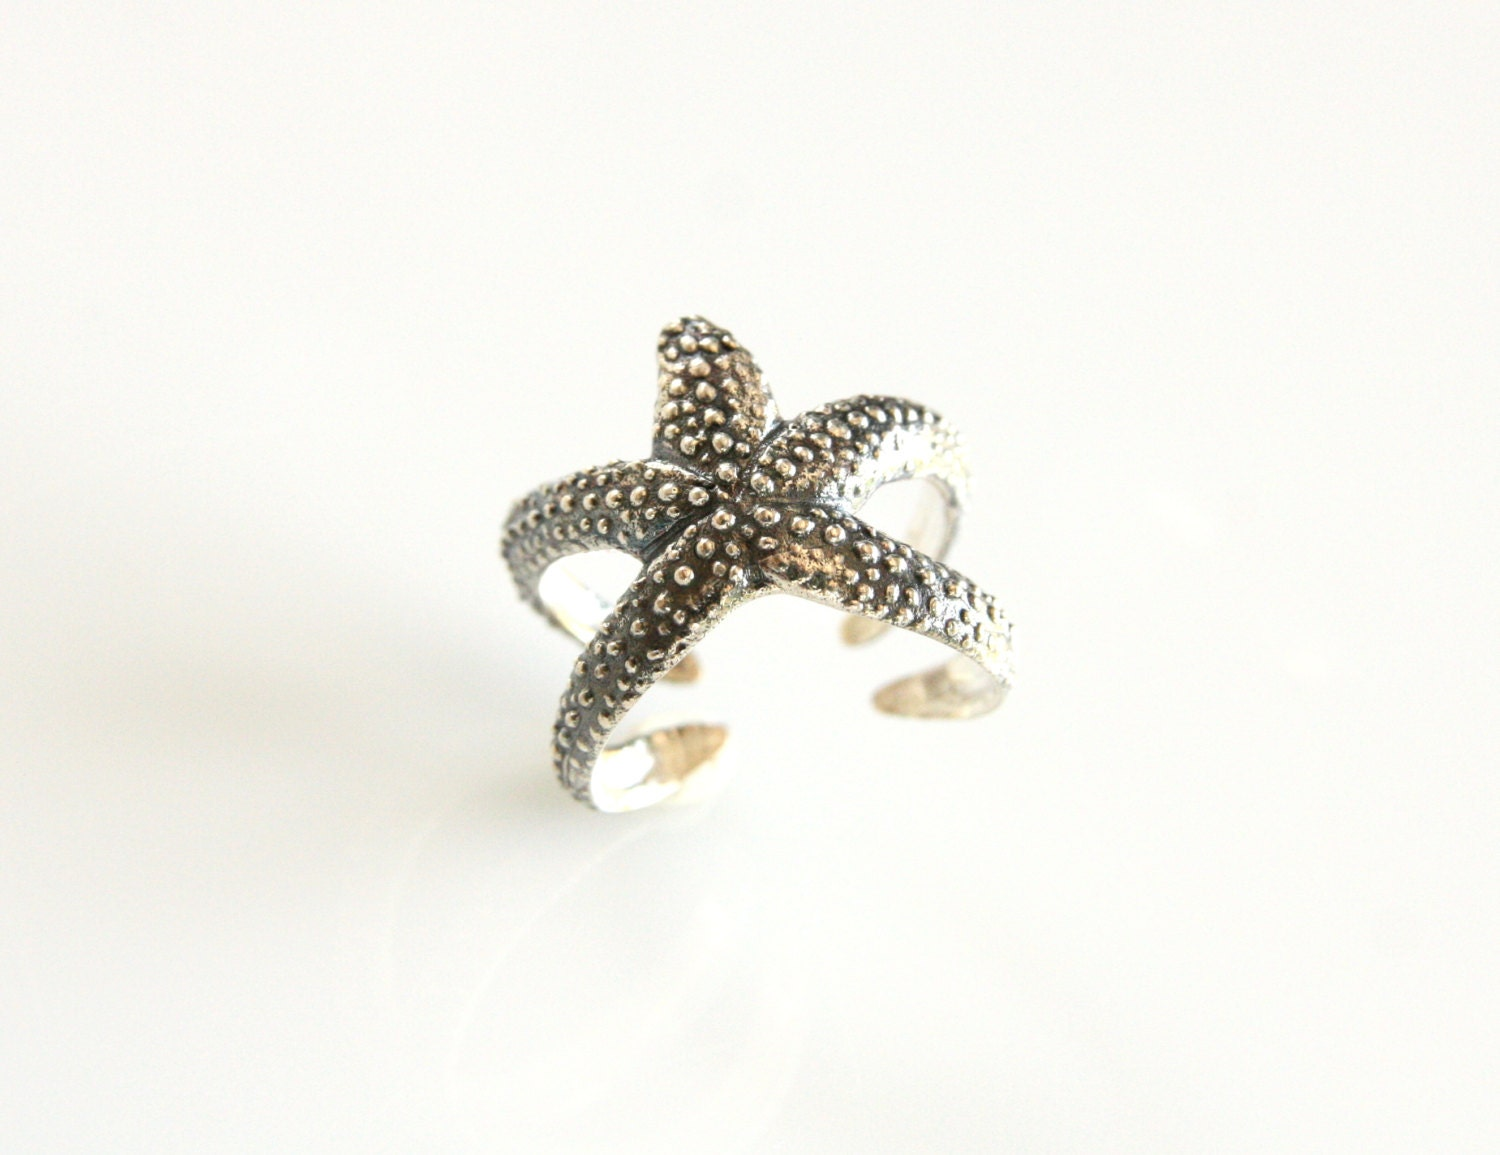 starfish ring silver ring statement ring statement jewelry